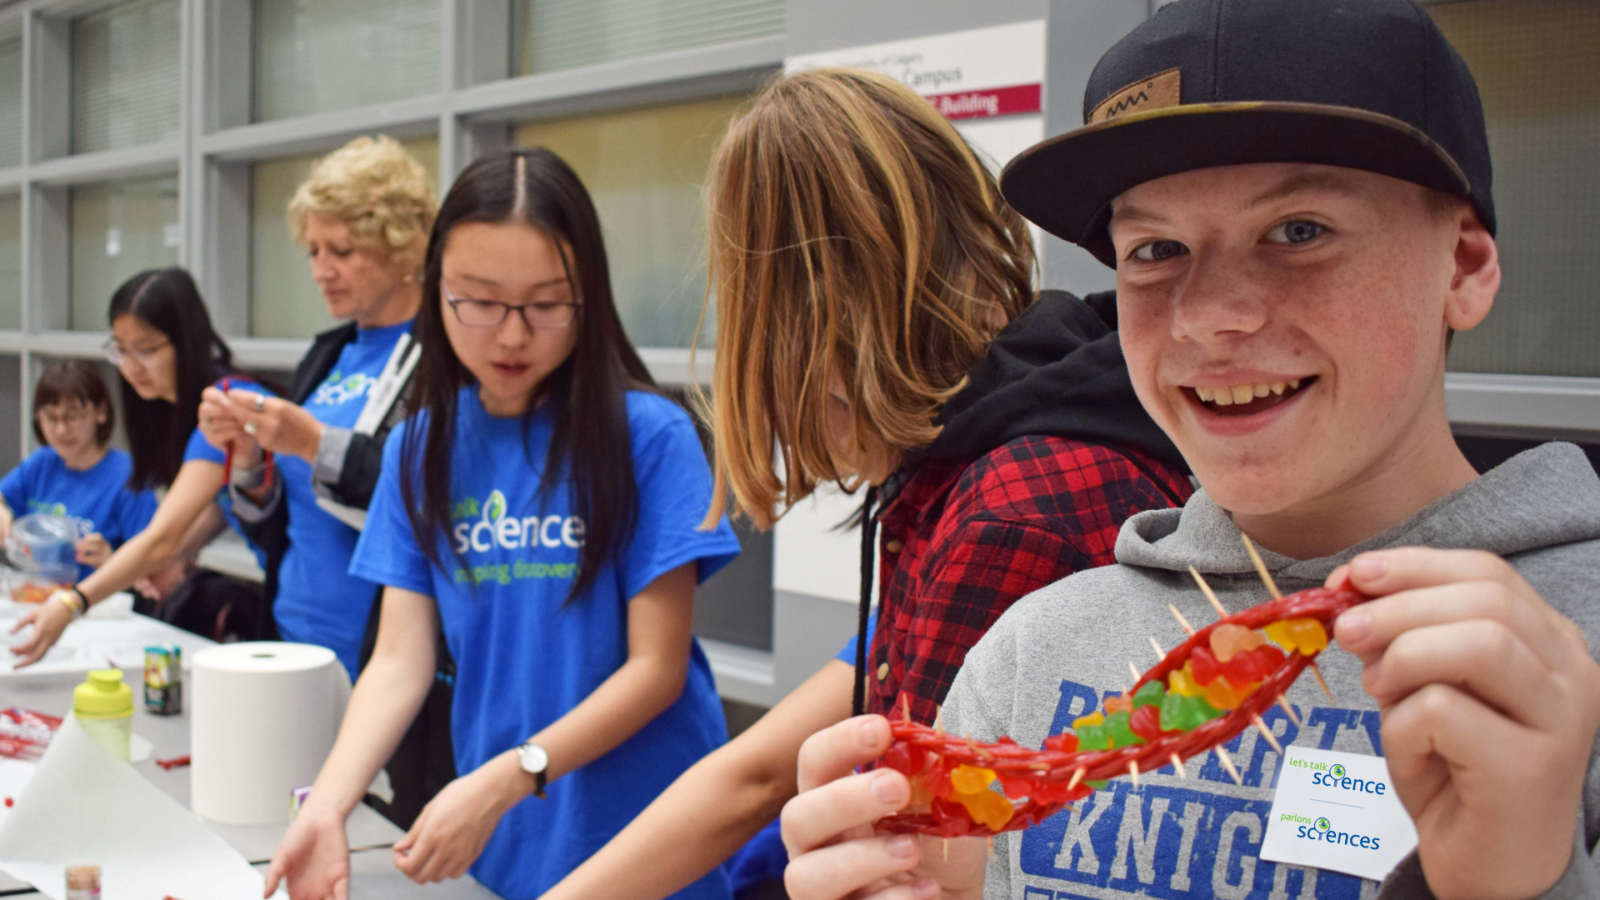 Boy smiling while holding a candy DNA activity